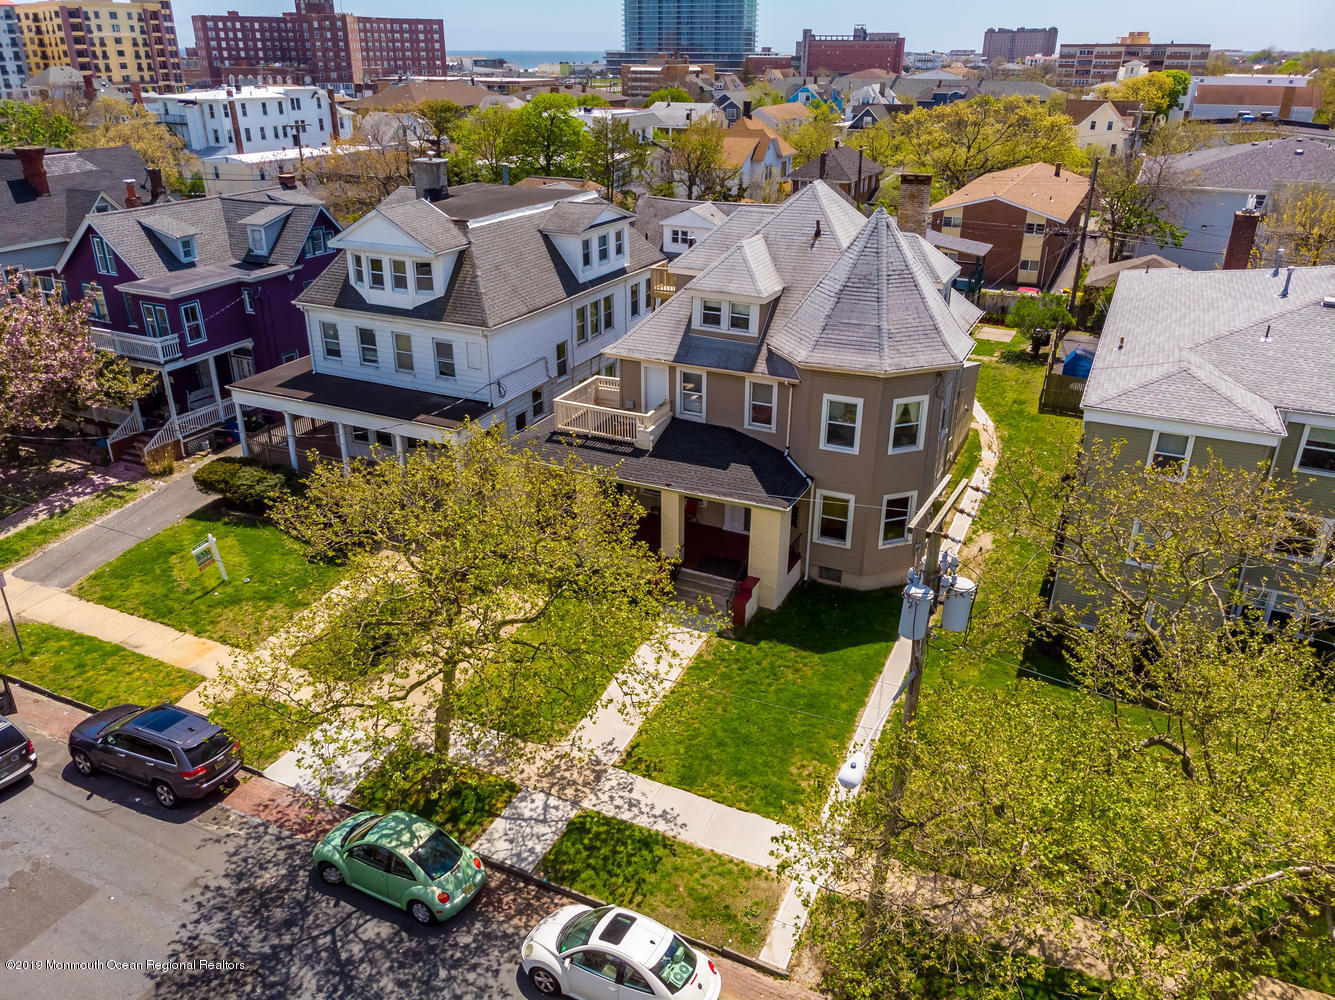 Beautiful, over-sized turn of the century Queen Anne Victorian in the estate home section of NE Asbury Park, 2 1/2  blocks off the beachfront.  The property is comprised of two buildings, the front main home (6 units) with original hardwood floors, and Victorian details, and a back, two-level carriage house(2 units). The financials are very strong under the current configuration with the net income in excess of $74K. While this home can certainly be maintained as a cash positive rental building, the property also offers unlimited restoration or redevelopment potential.  Given the close proximity to the beach, this property would make a wonderful condo conversion for high end weekend units, or, restore this amazing property to its former grandeur as a stately principal home.